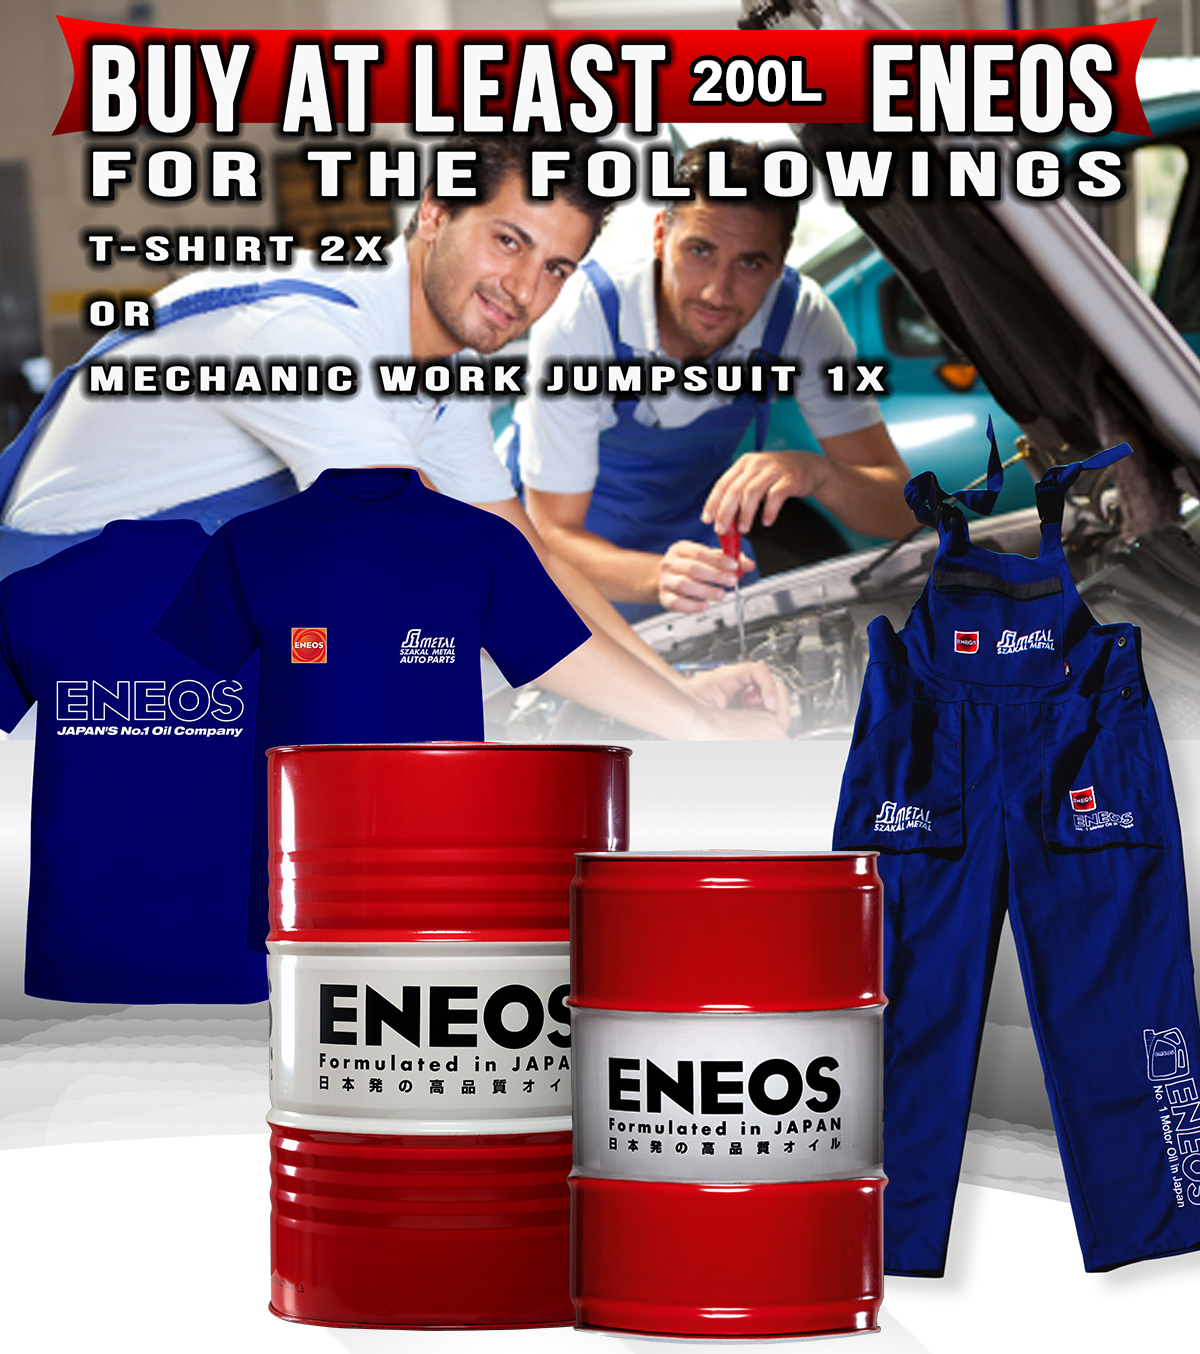 ENEOS Sales:  gift T-shirts or Jumpsuit